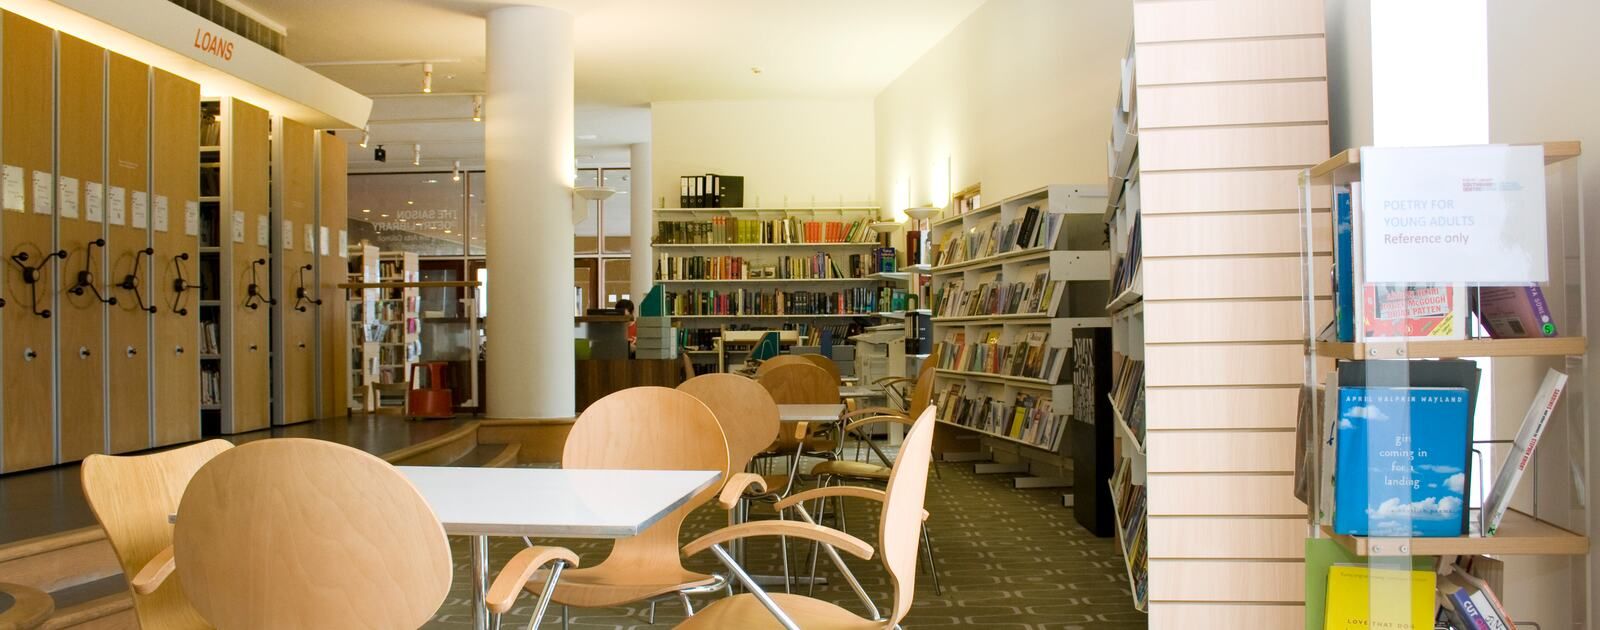 Inside The Poetry Library at the Southbank Centre